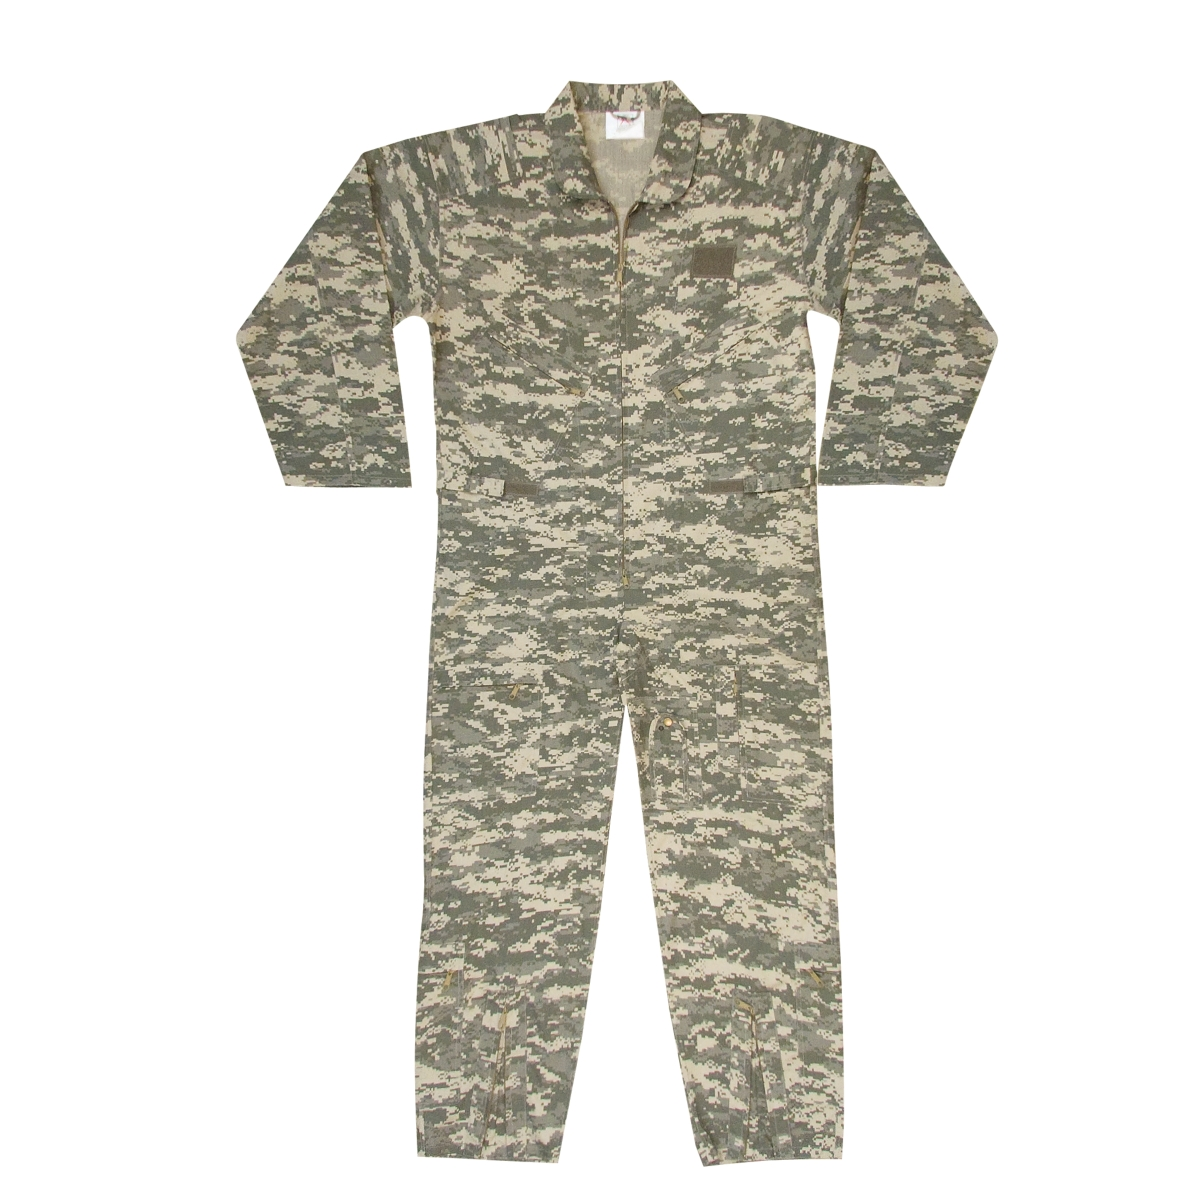 Rothco New, Mens Army Digital Camo ACU Military Flightsuit